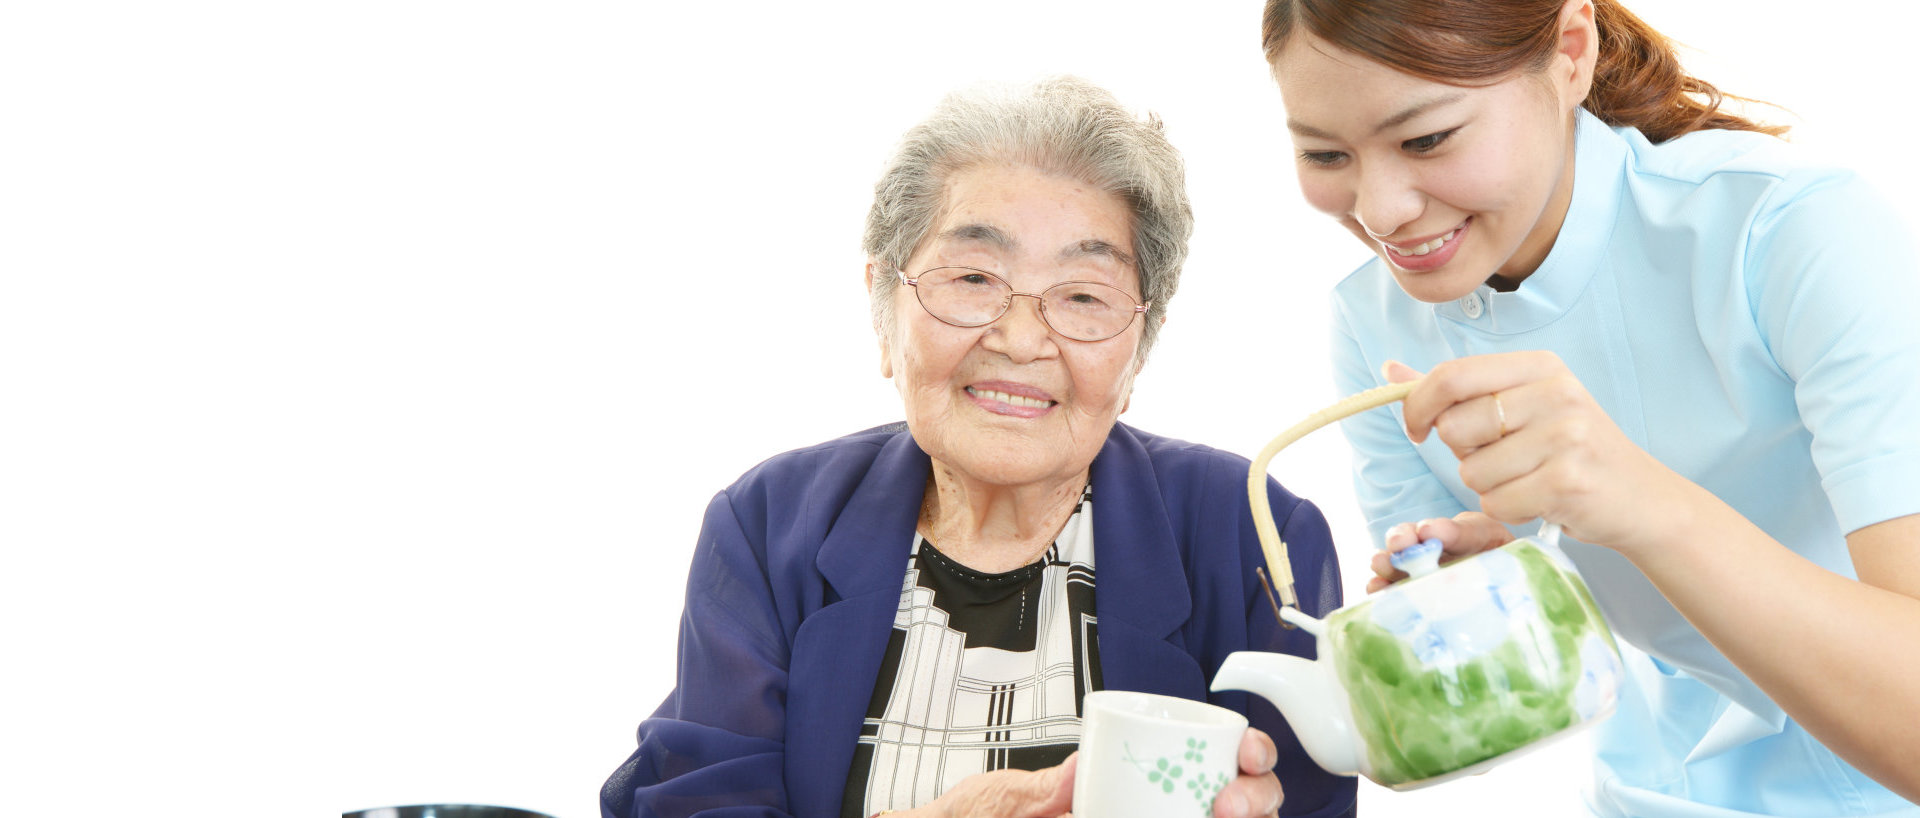 caregiver pouring a tea to patient's cup